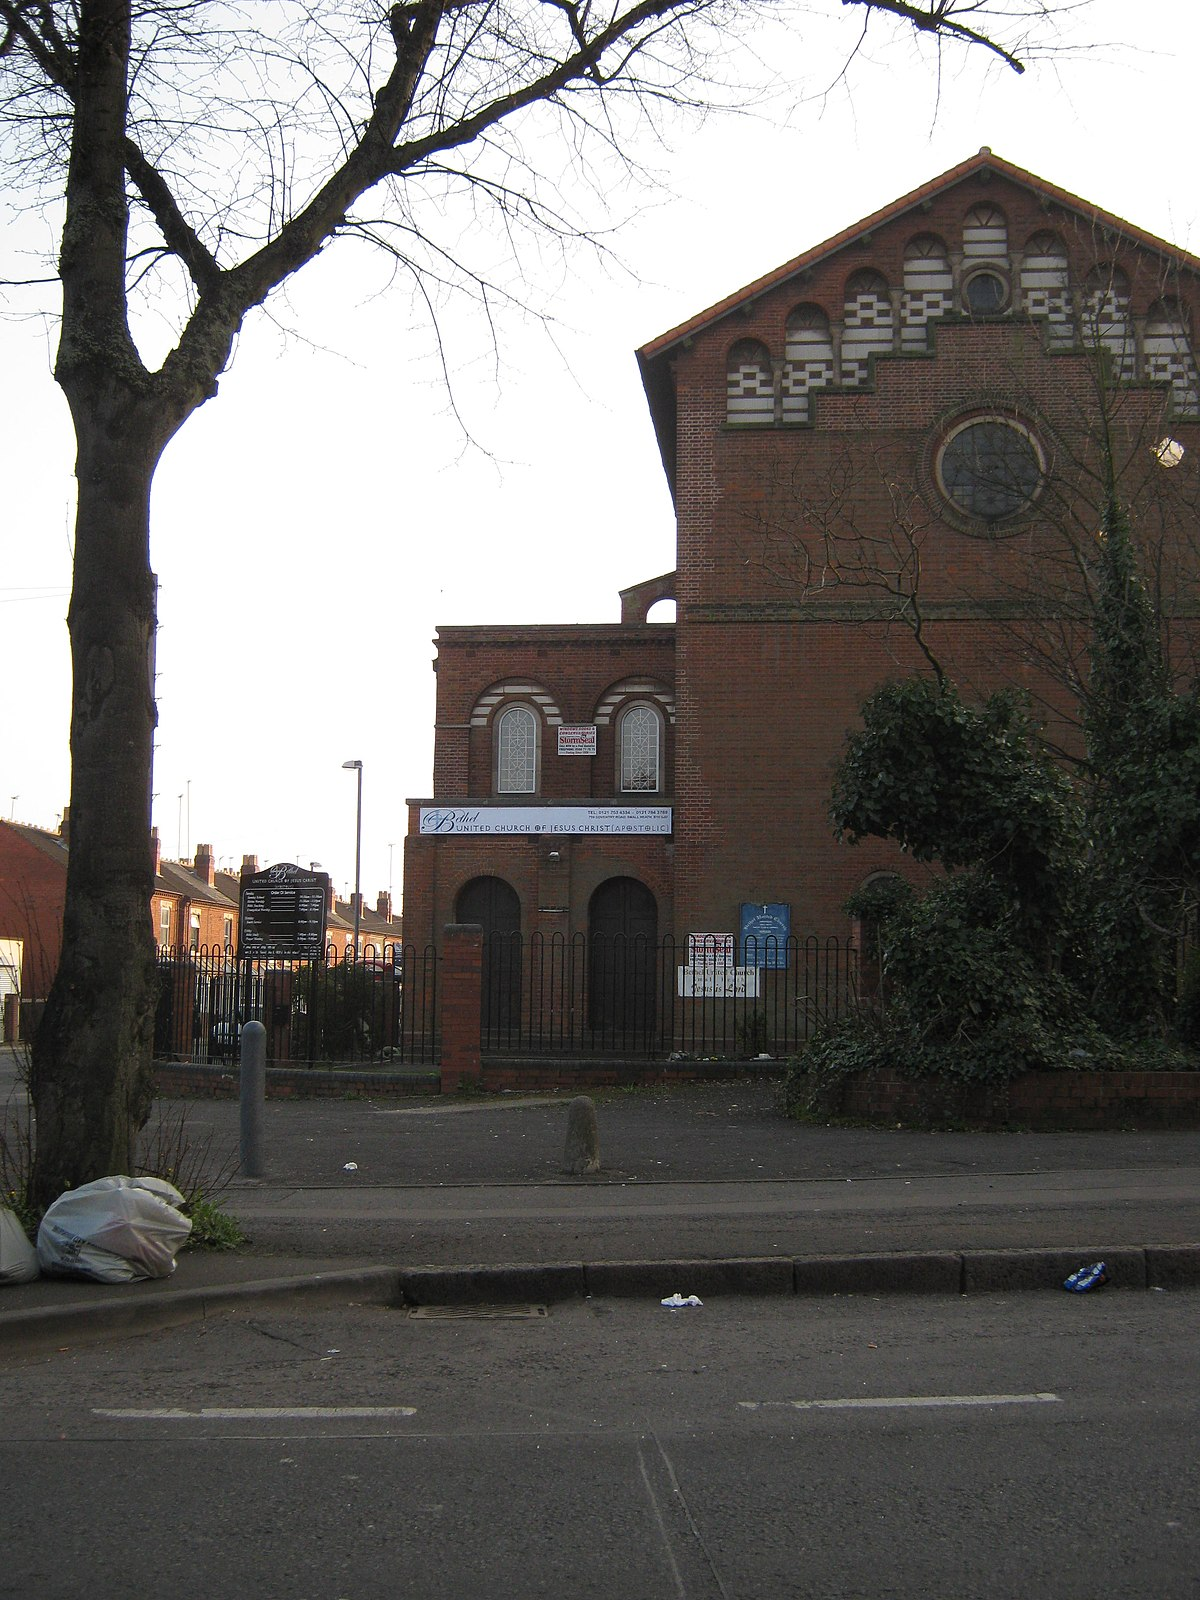 St Gregory the Great's Church, Small Heath - Wikipedia